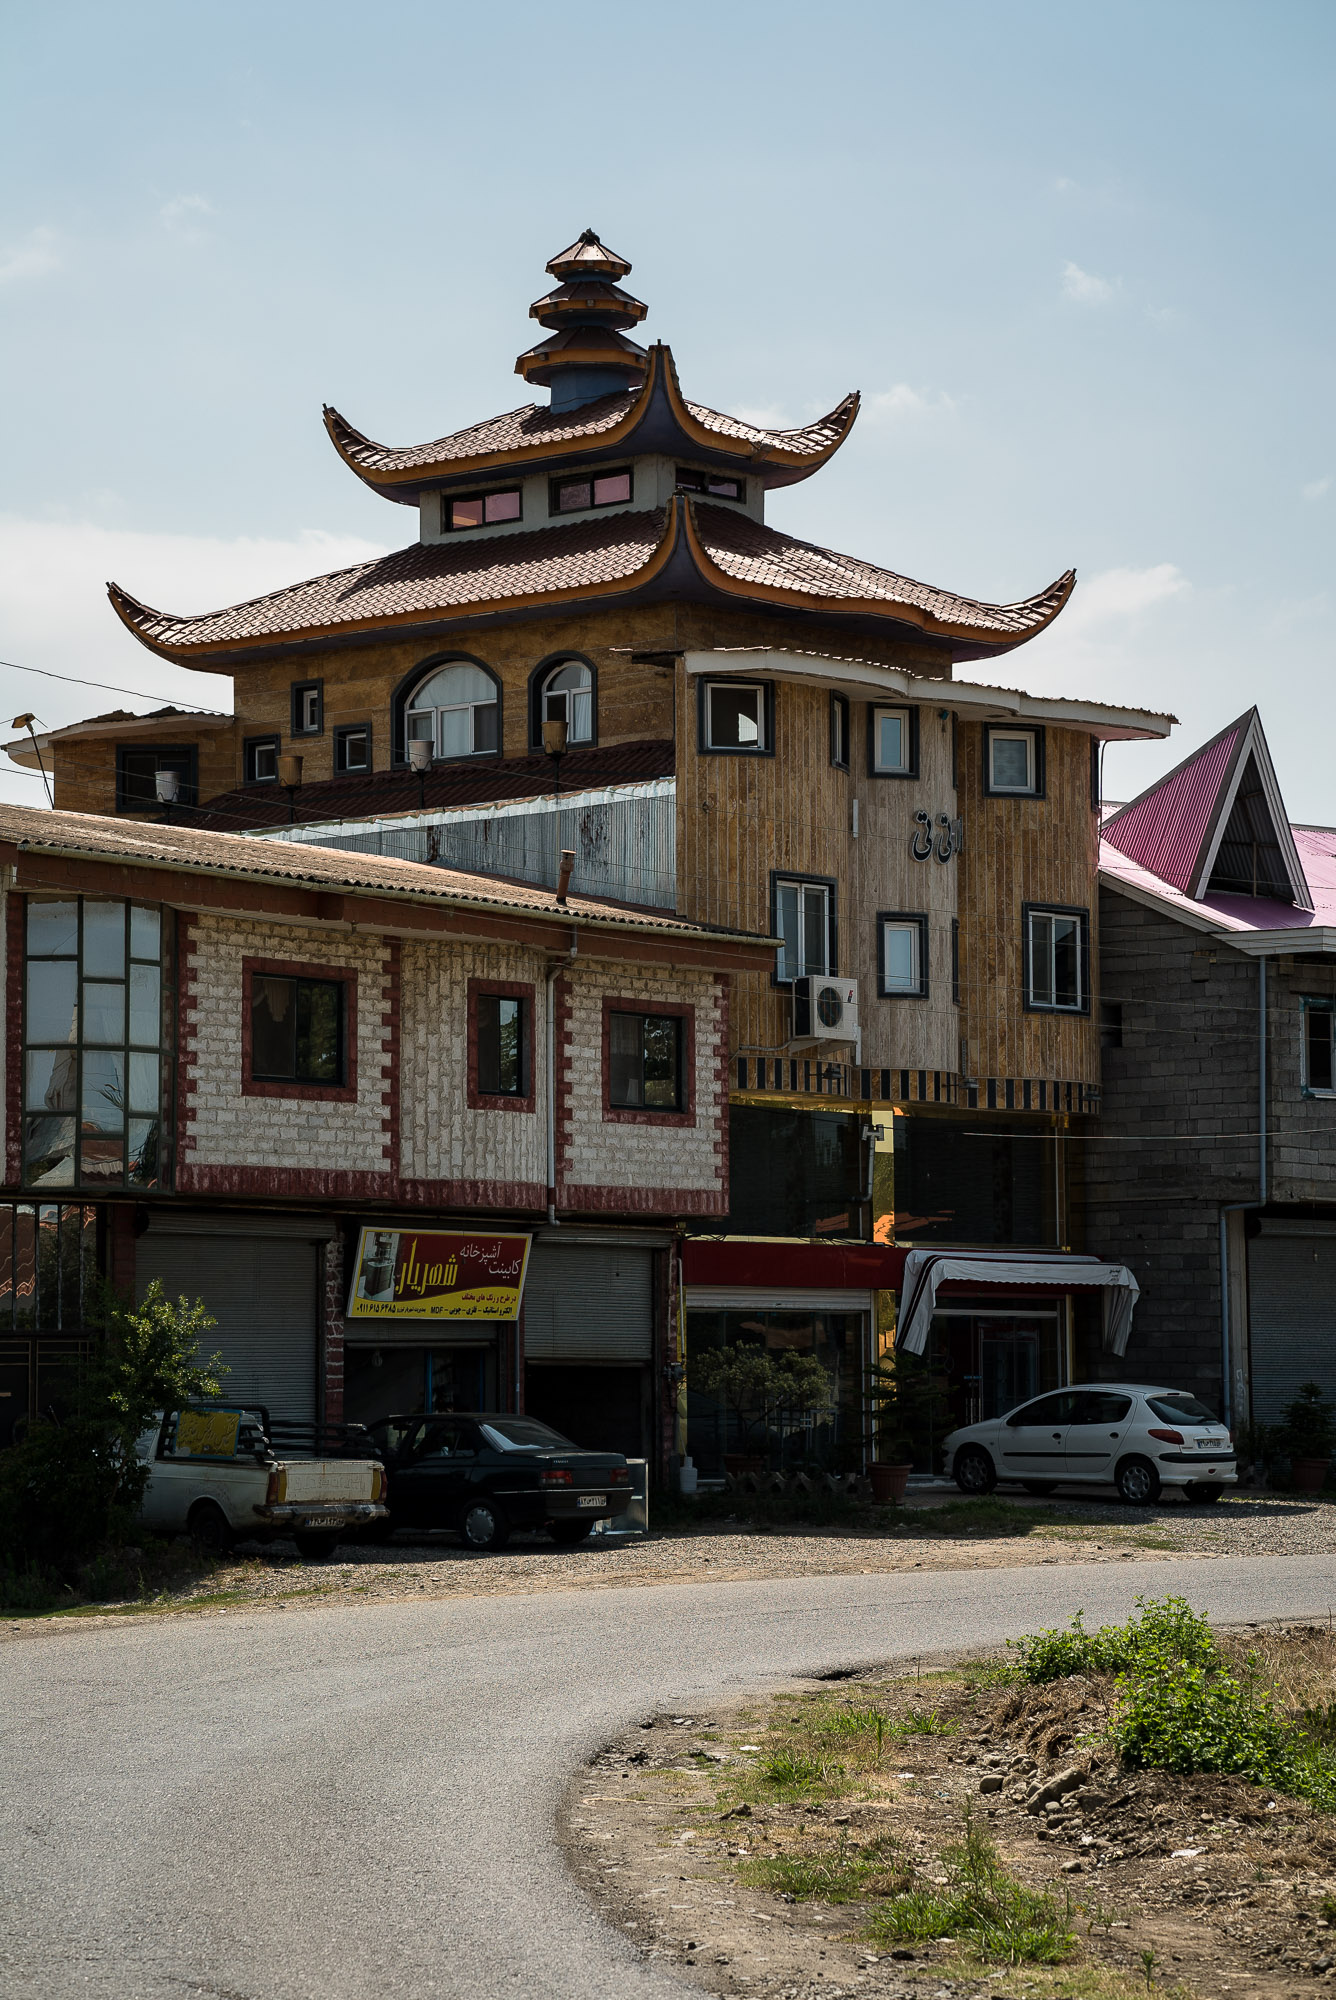 Chinese looking house